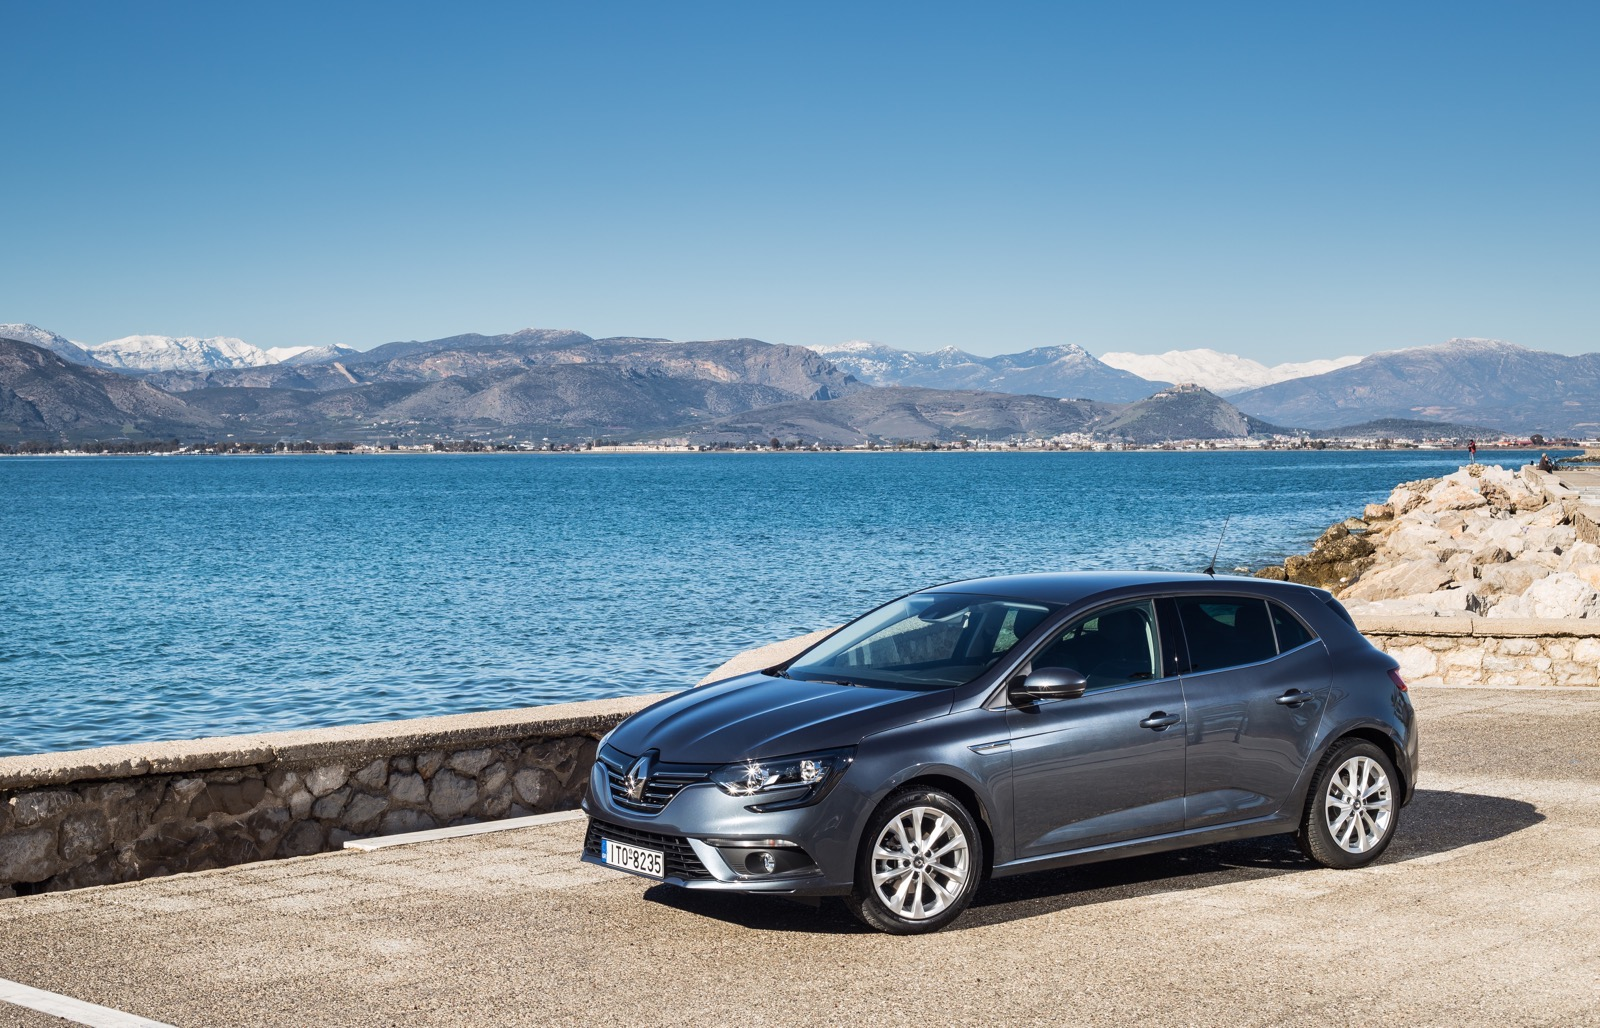 First_Drive_Renault_Megane_37